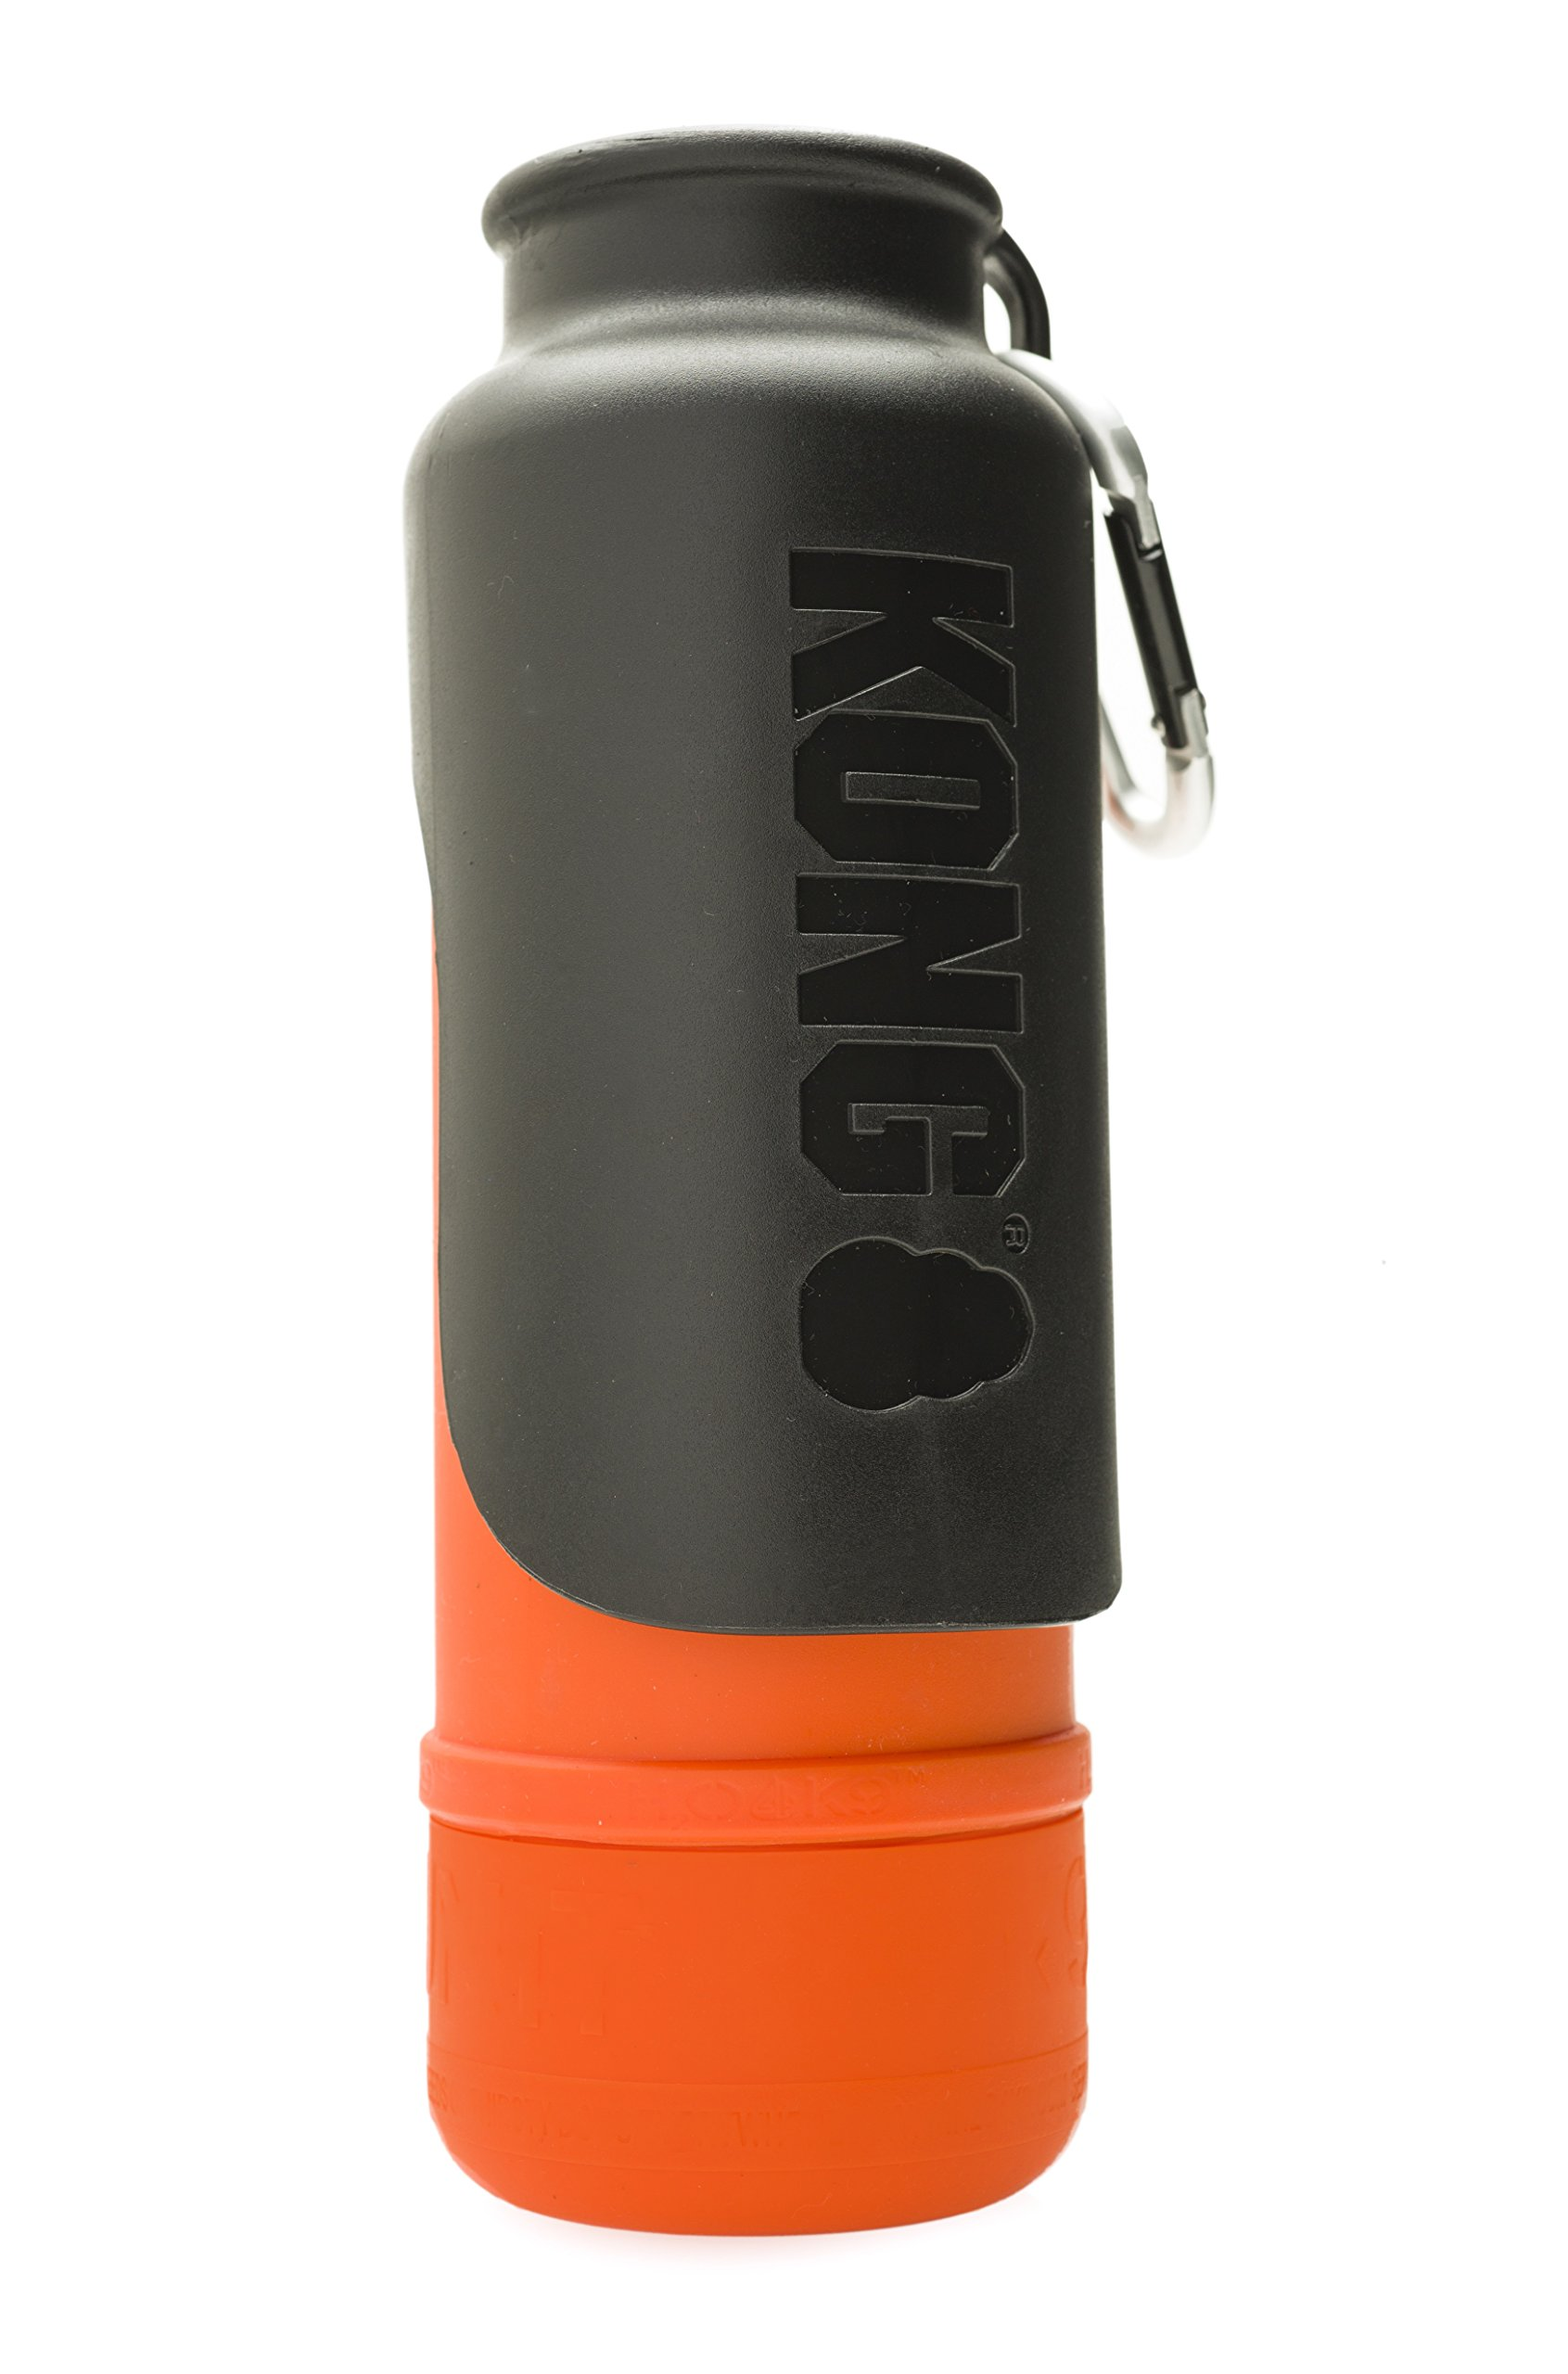 KONG H2O - Insulated Stainless Steel Dog Water Bottle - 25 oz - Orange